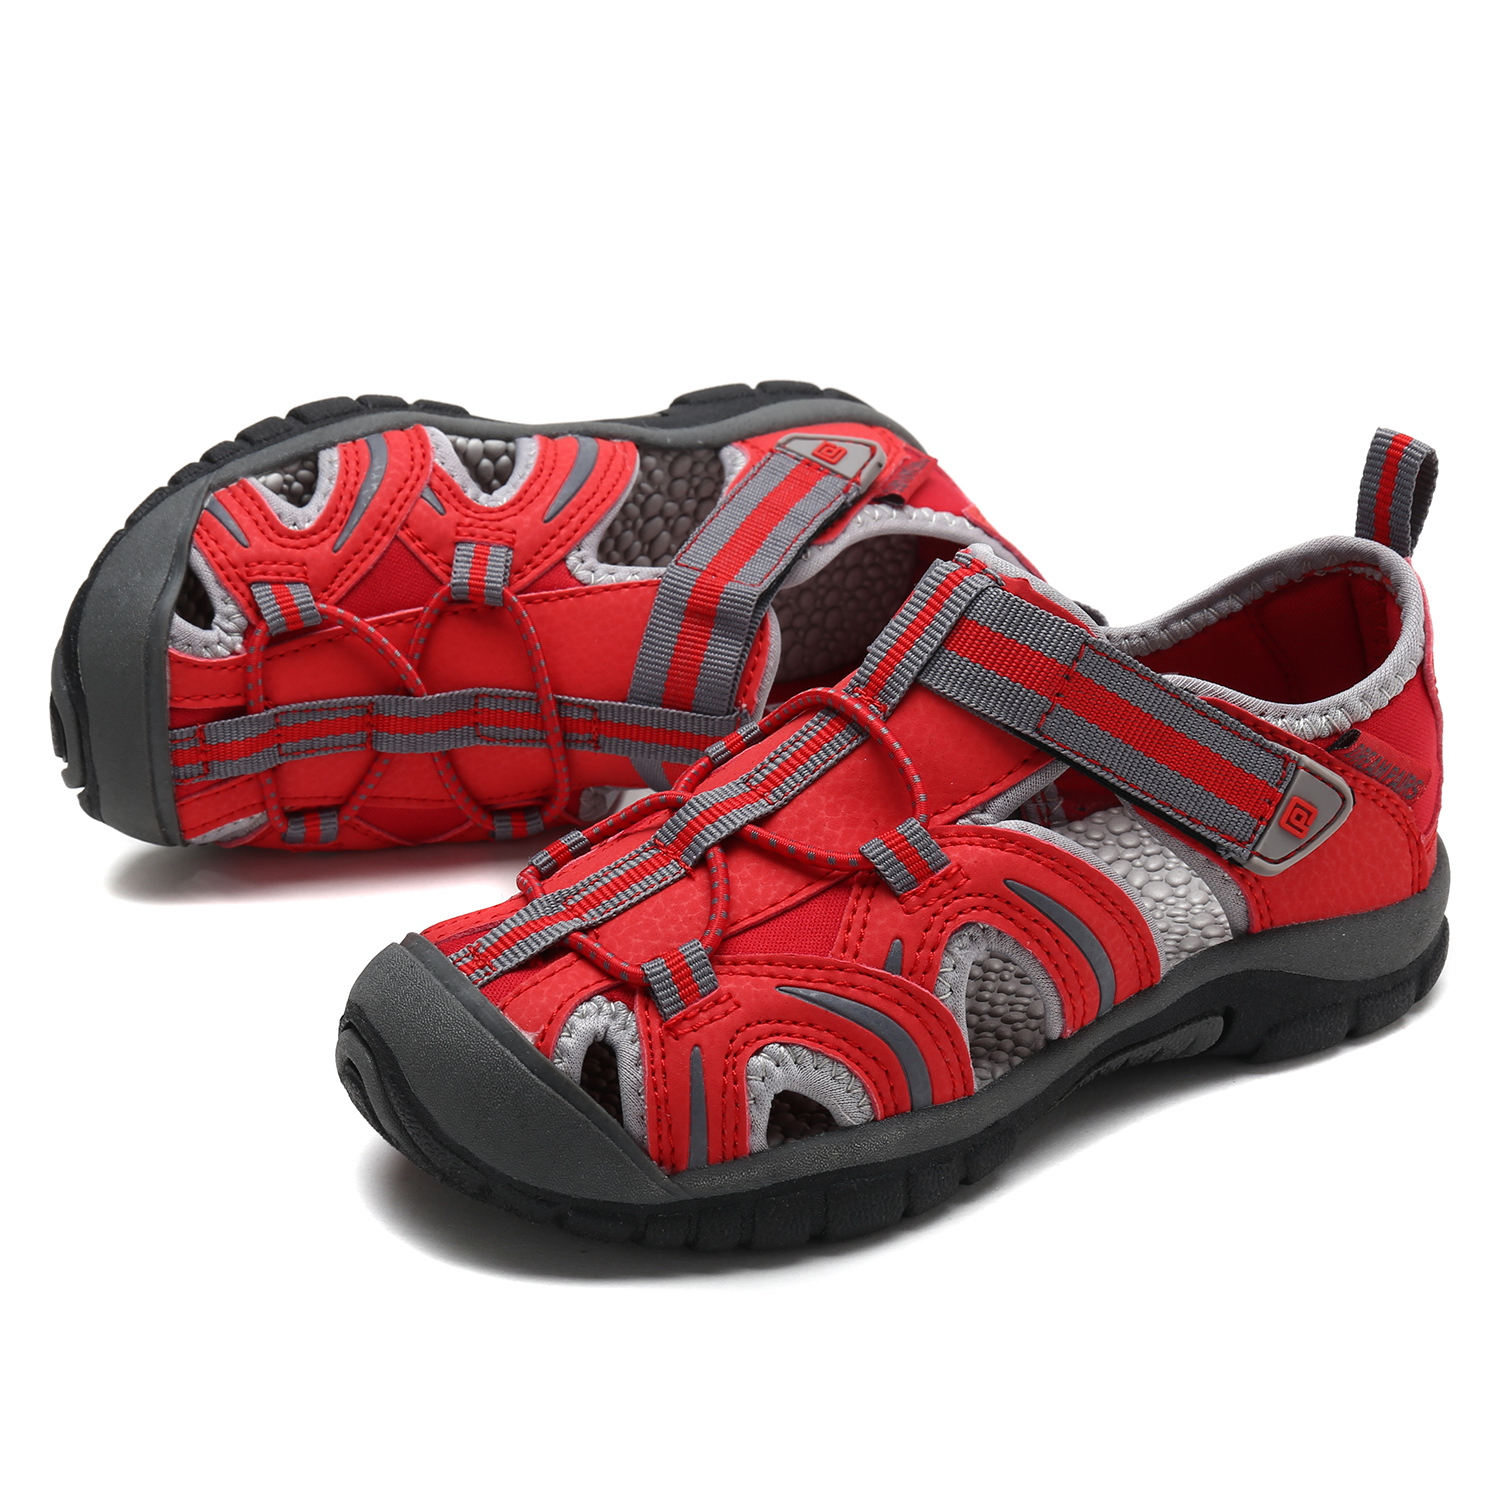 DREAM PAIRS Boys Girls Toddler Kids 171112-K New Outdoor Summer Athletic Sandals